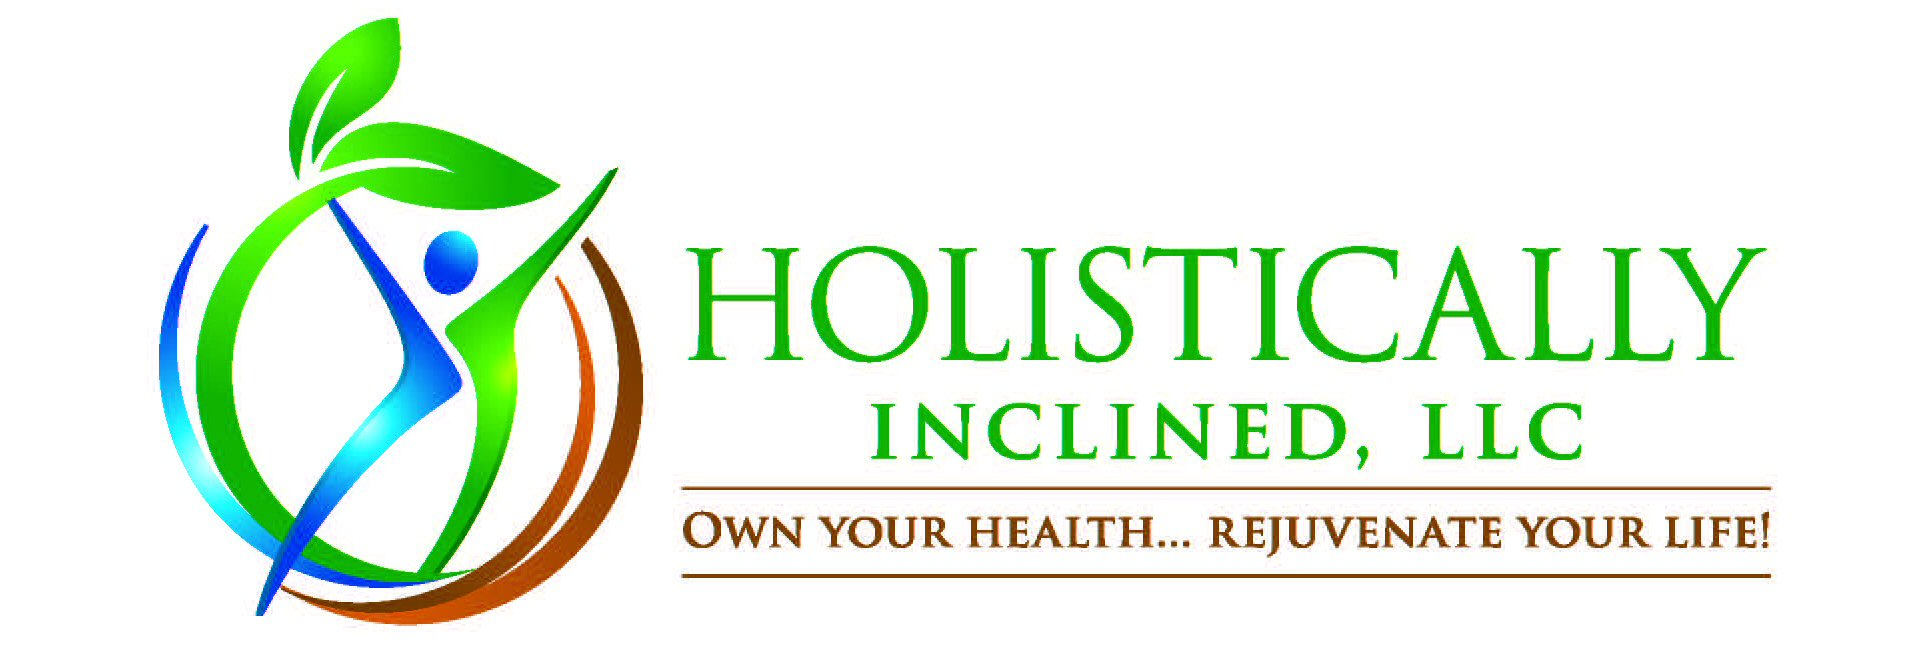 Holistically Inclined, LLC - Own your health...Rejuvenate your life